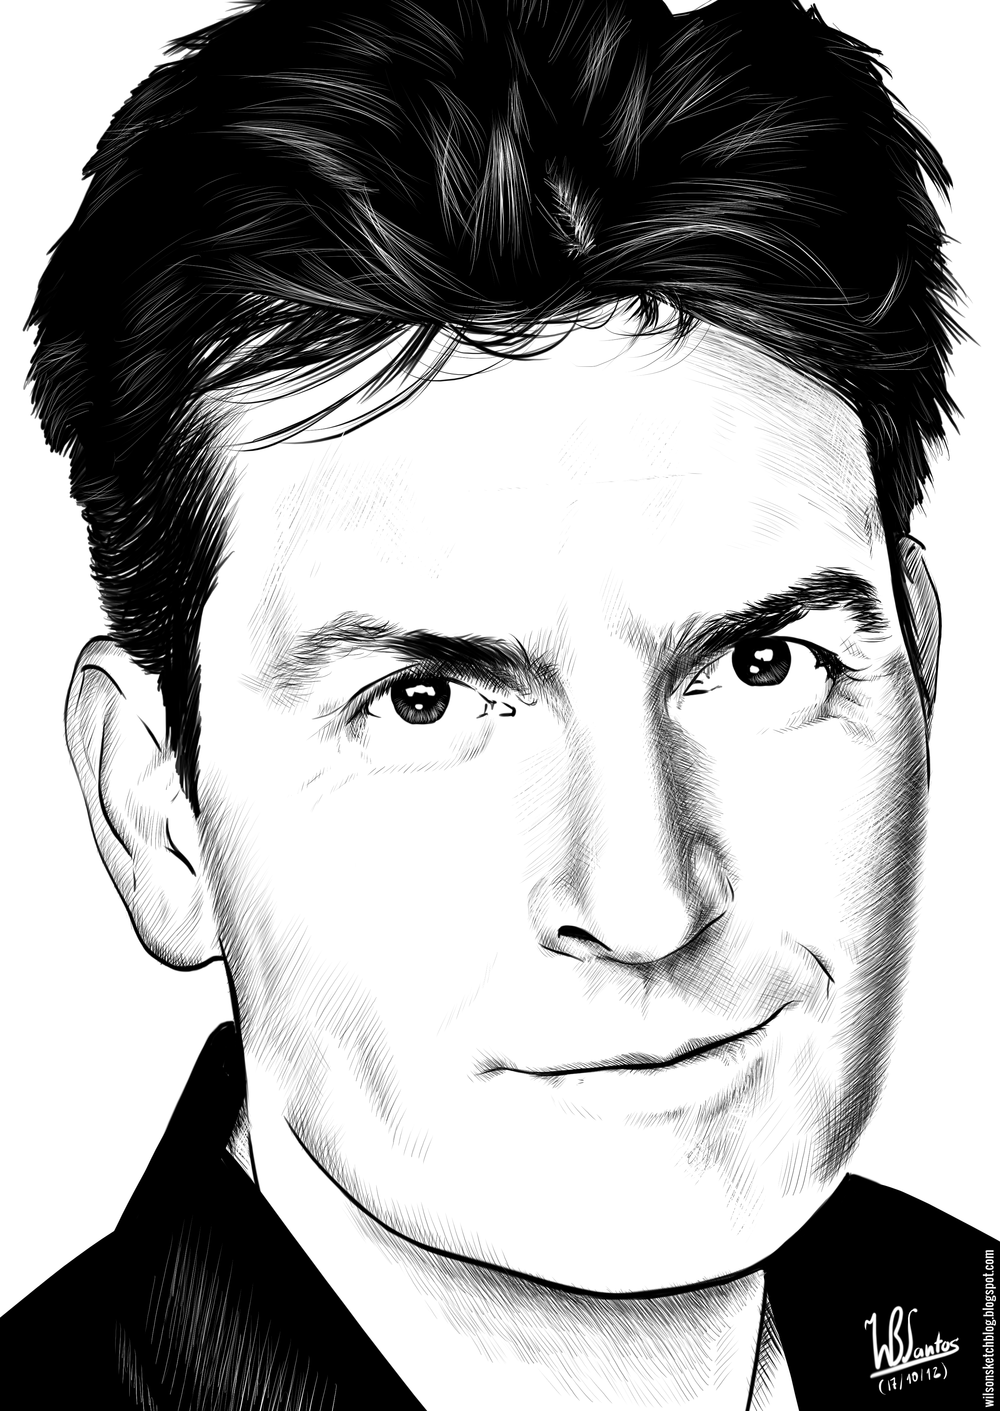 Charlie Sheen (Ink drawing)